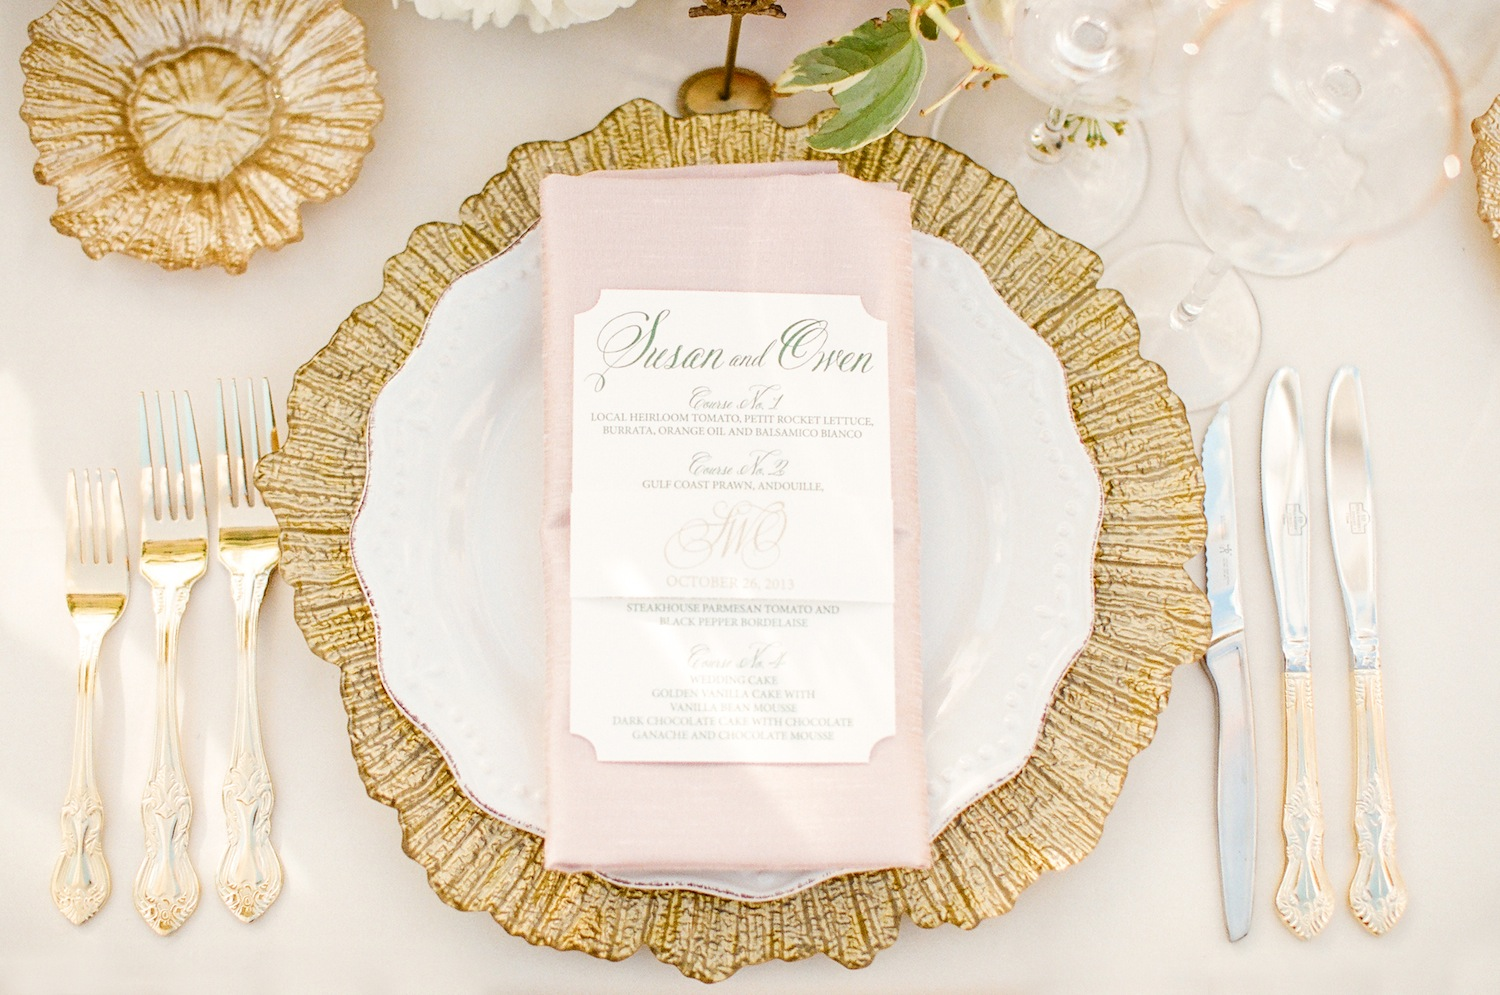 Light pink napkin, gold charger plate, gold flatware